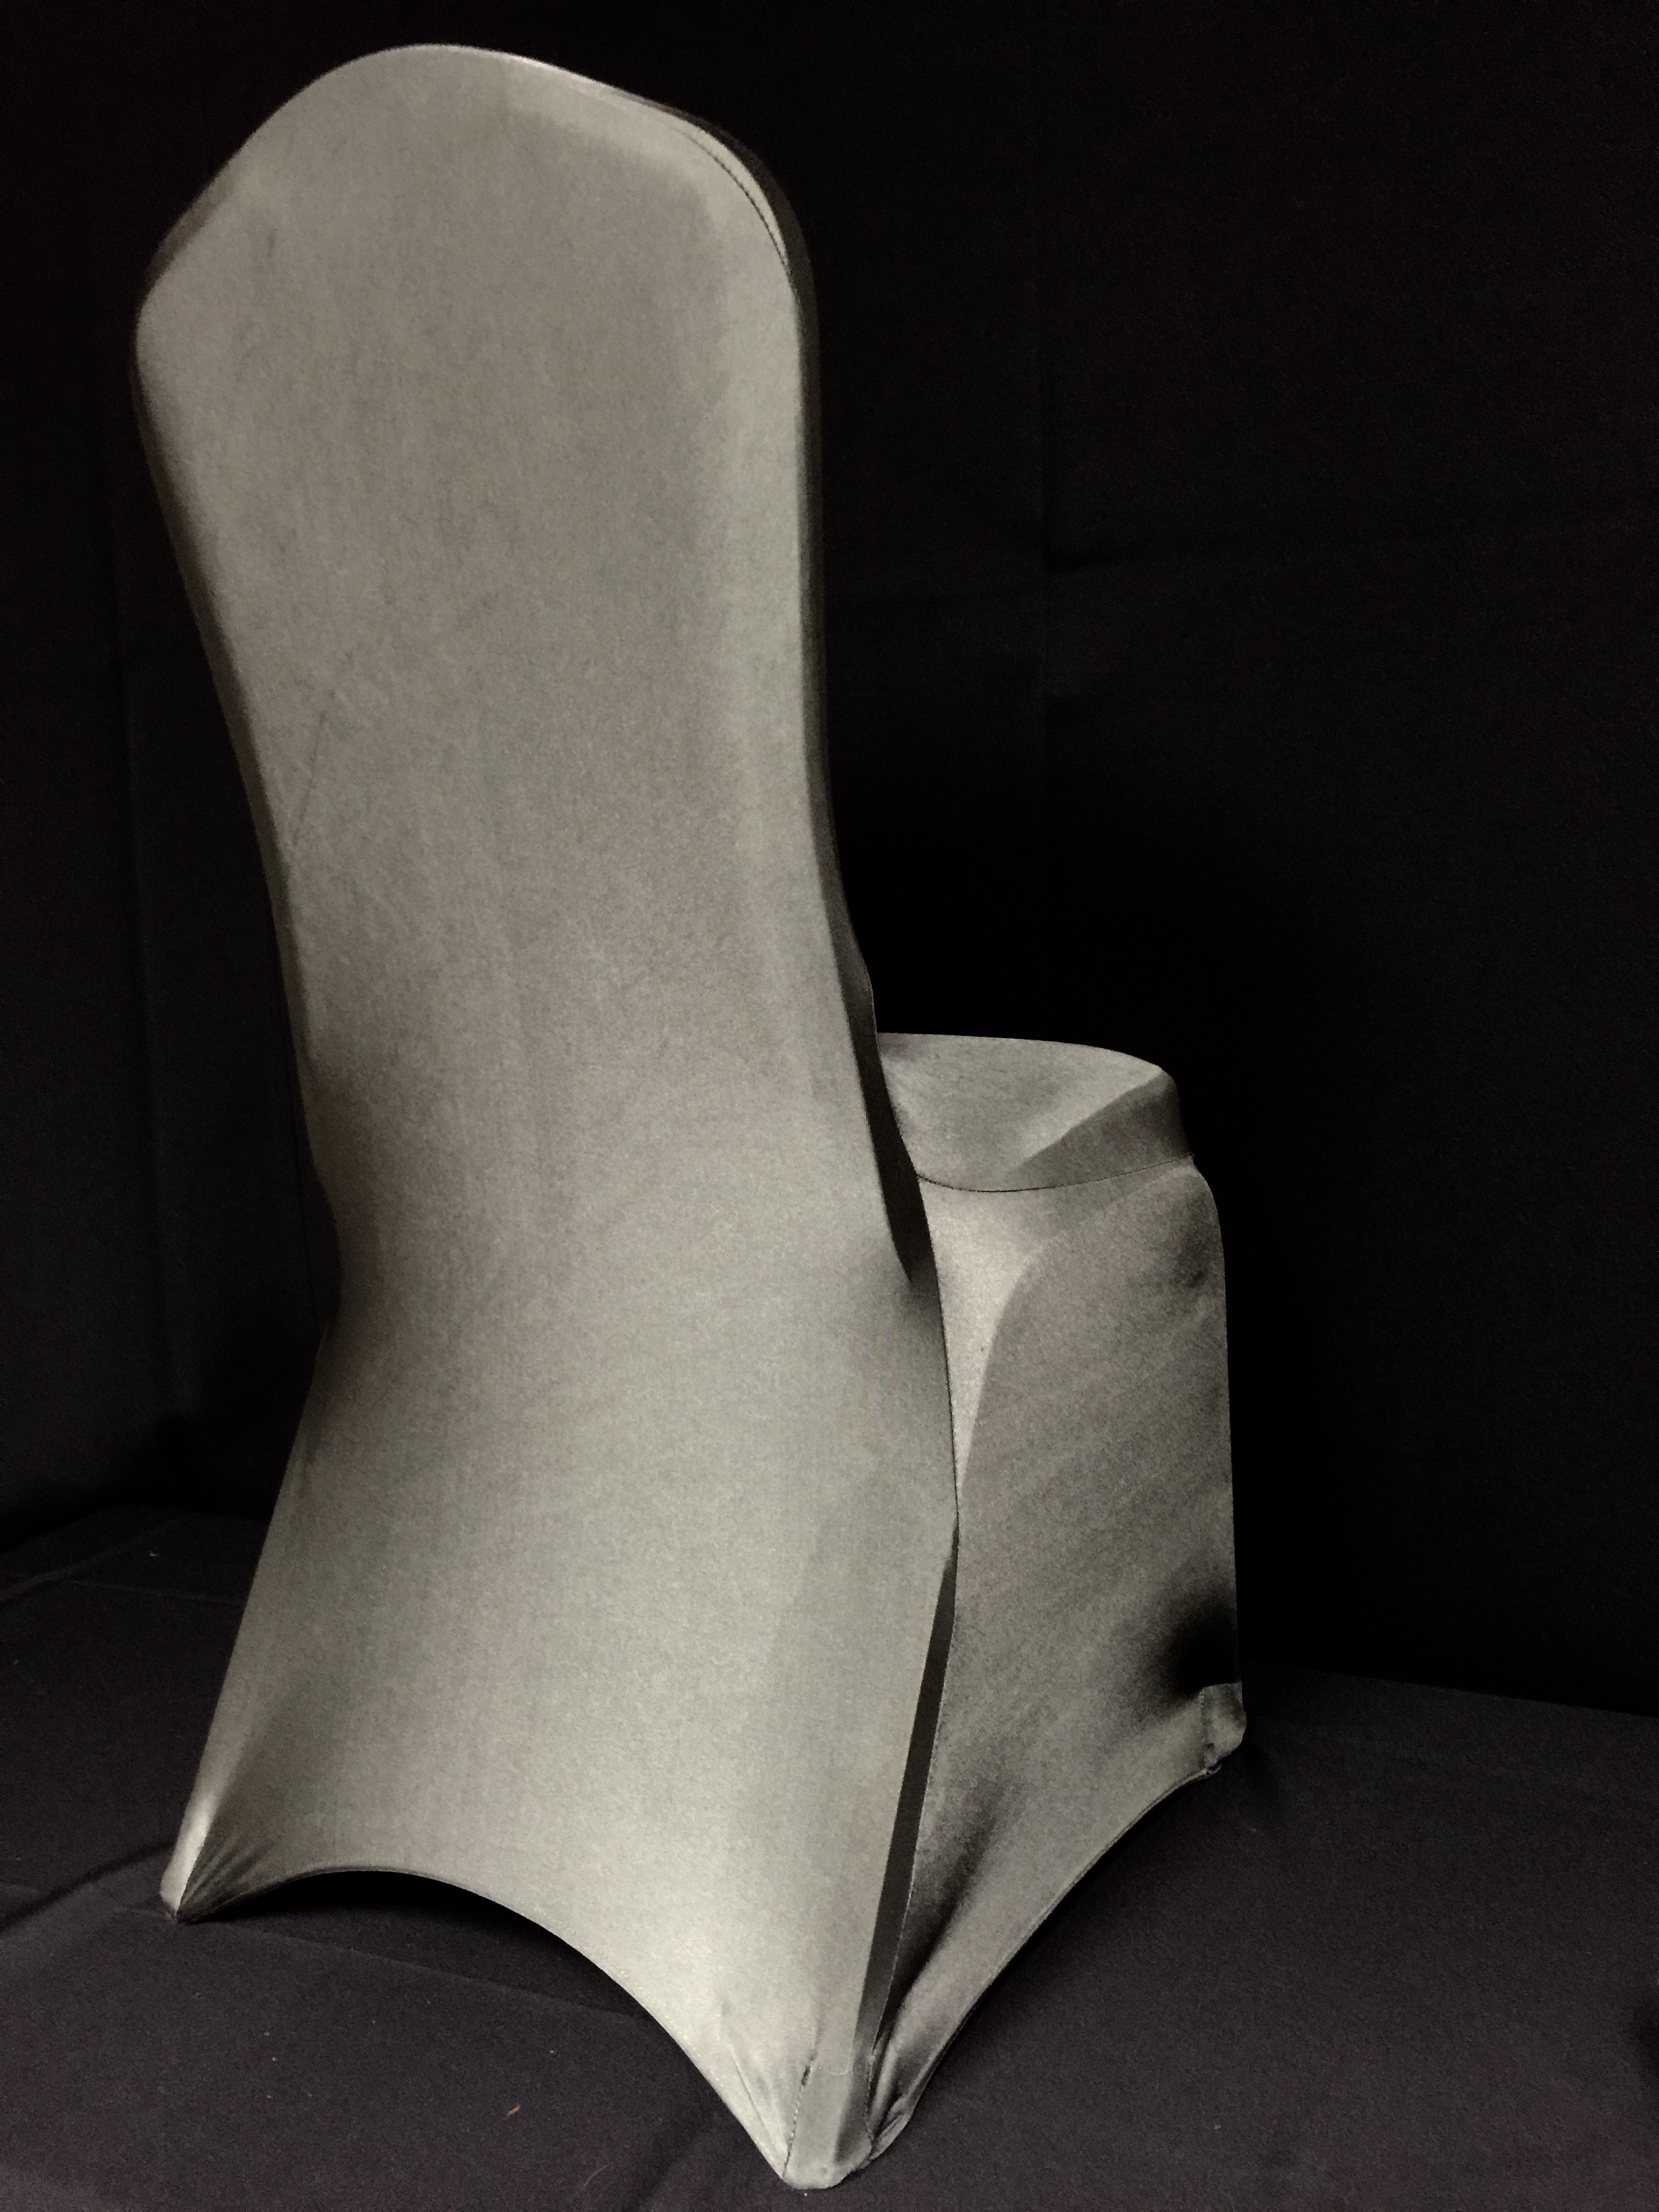 ... Charcoal Grey Spandex Chair Covers. View Larger